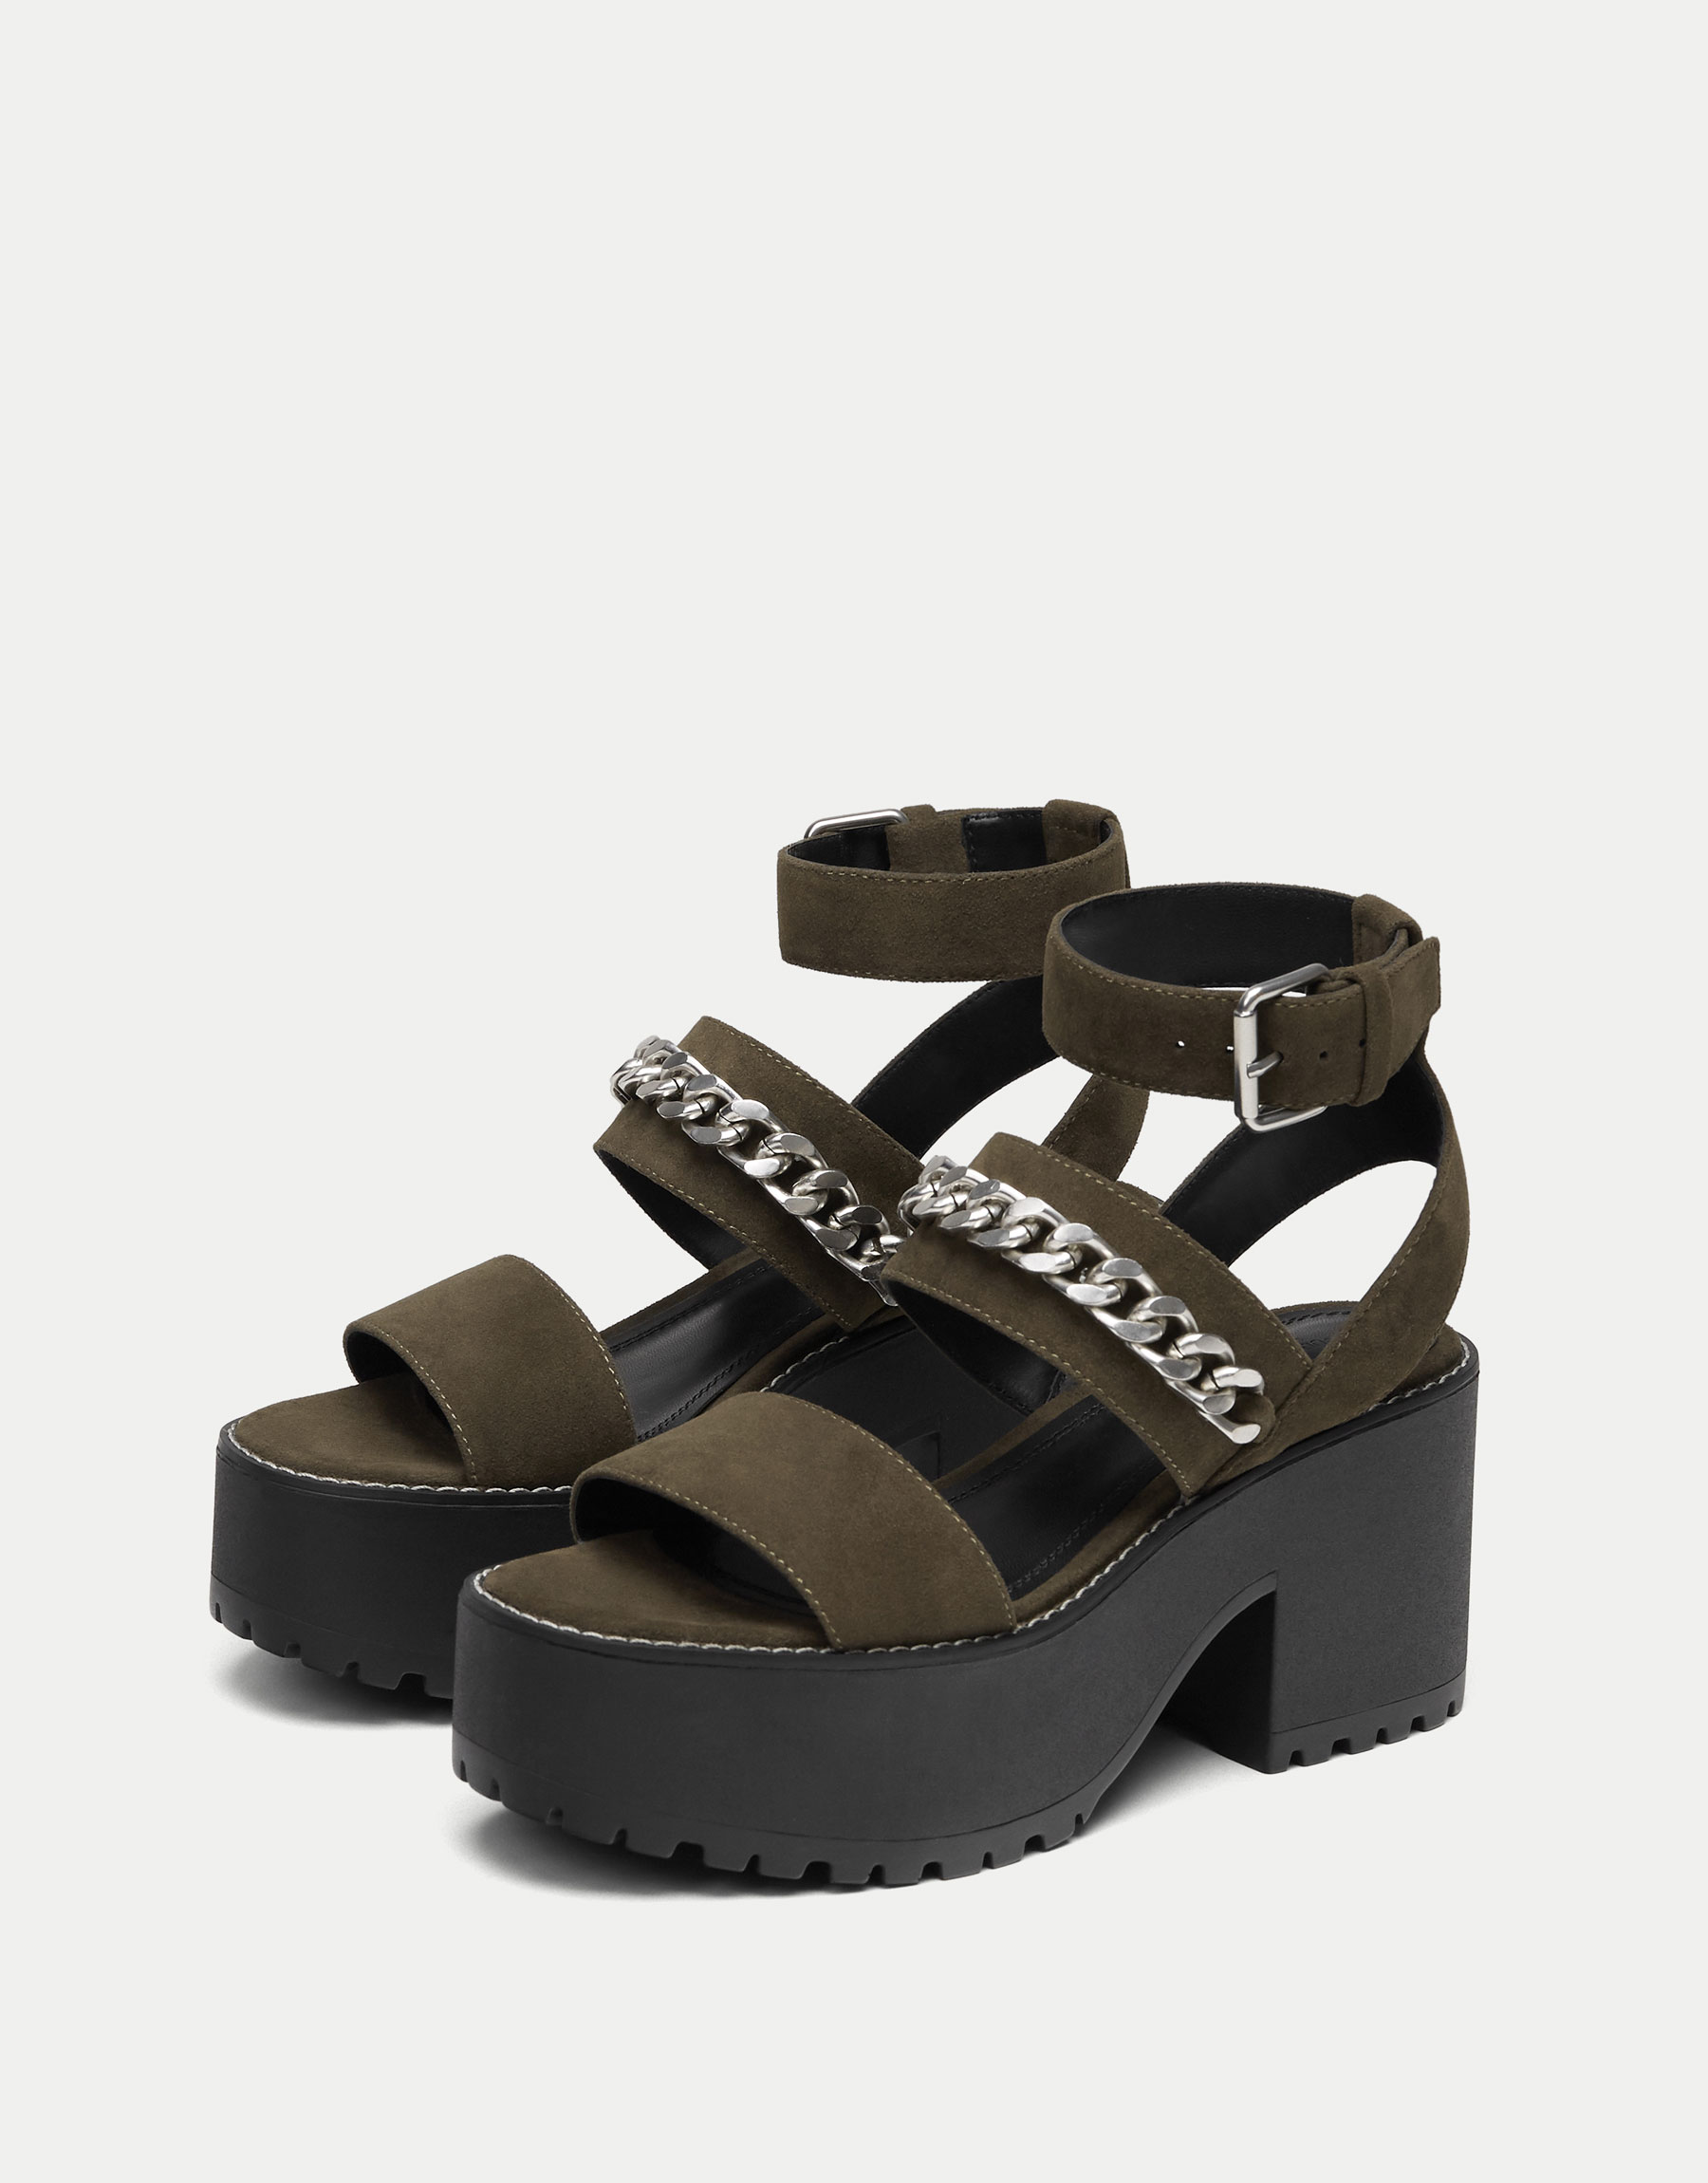 High heel sandals with chain